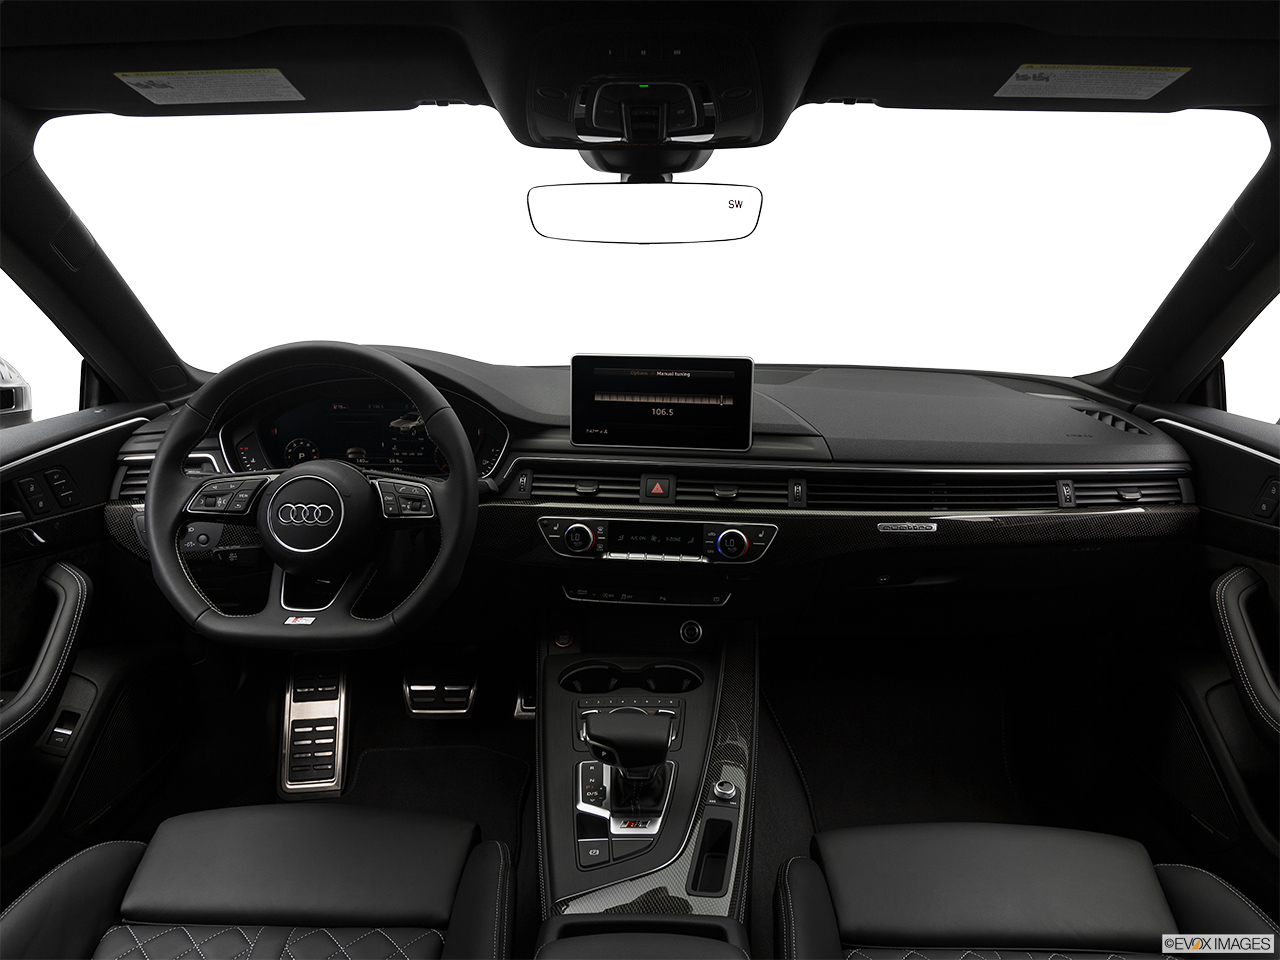 2019 Audi S5 Sportback Premium Plus 3.0 TFSI Centered wide dash shot